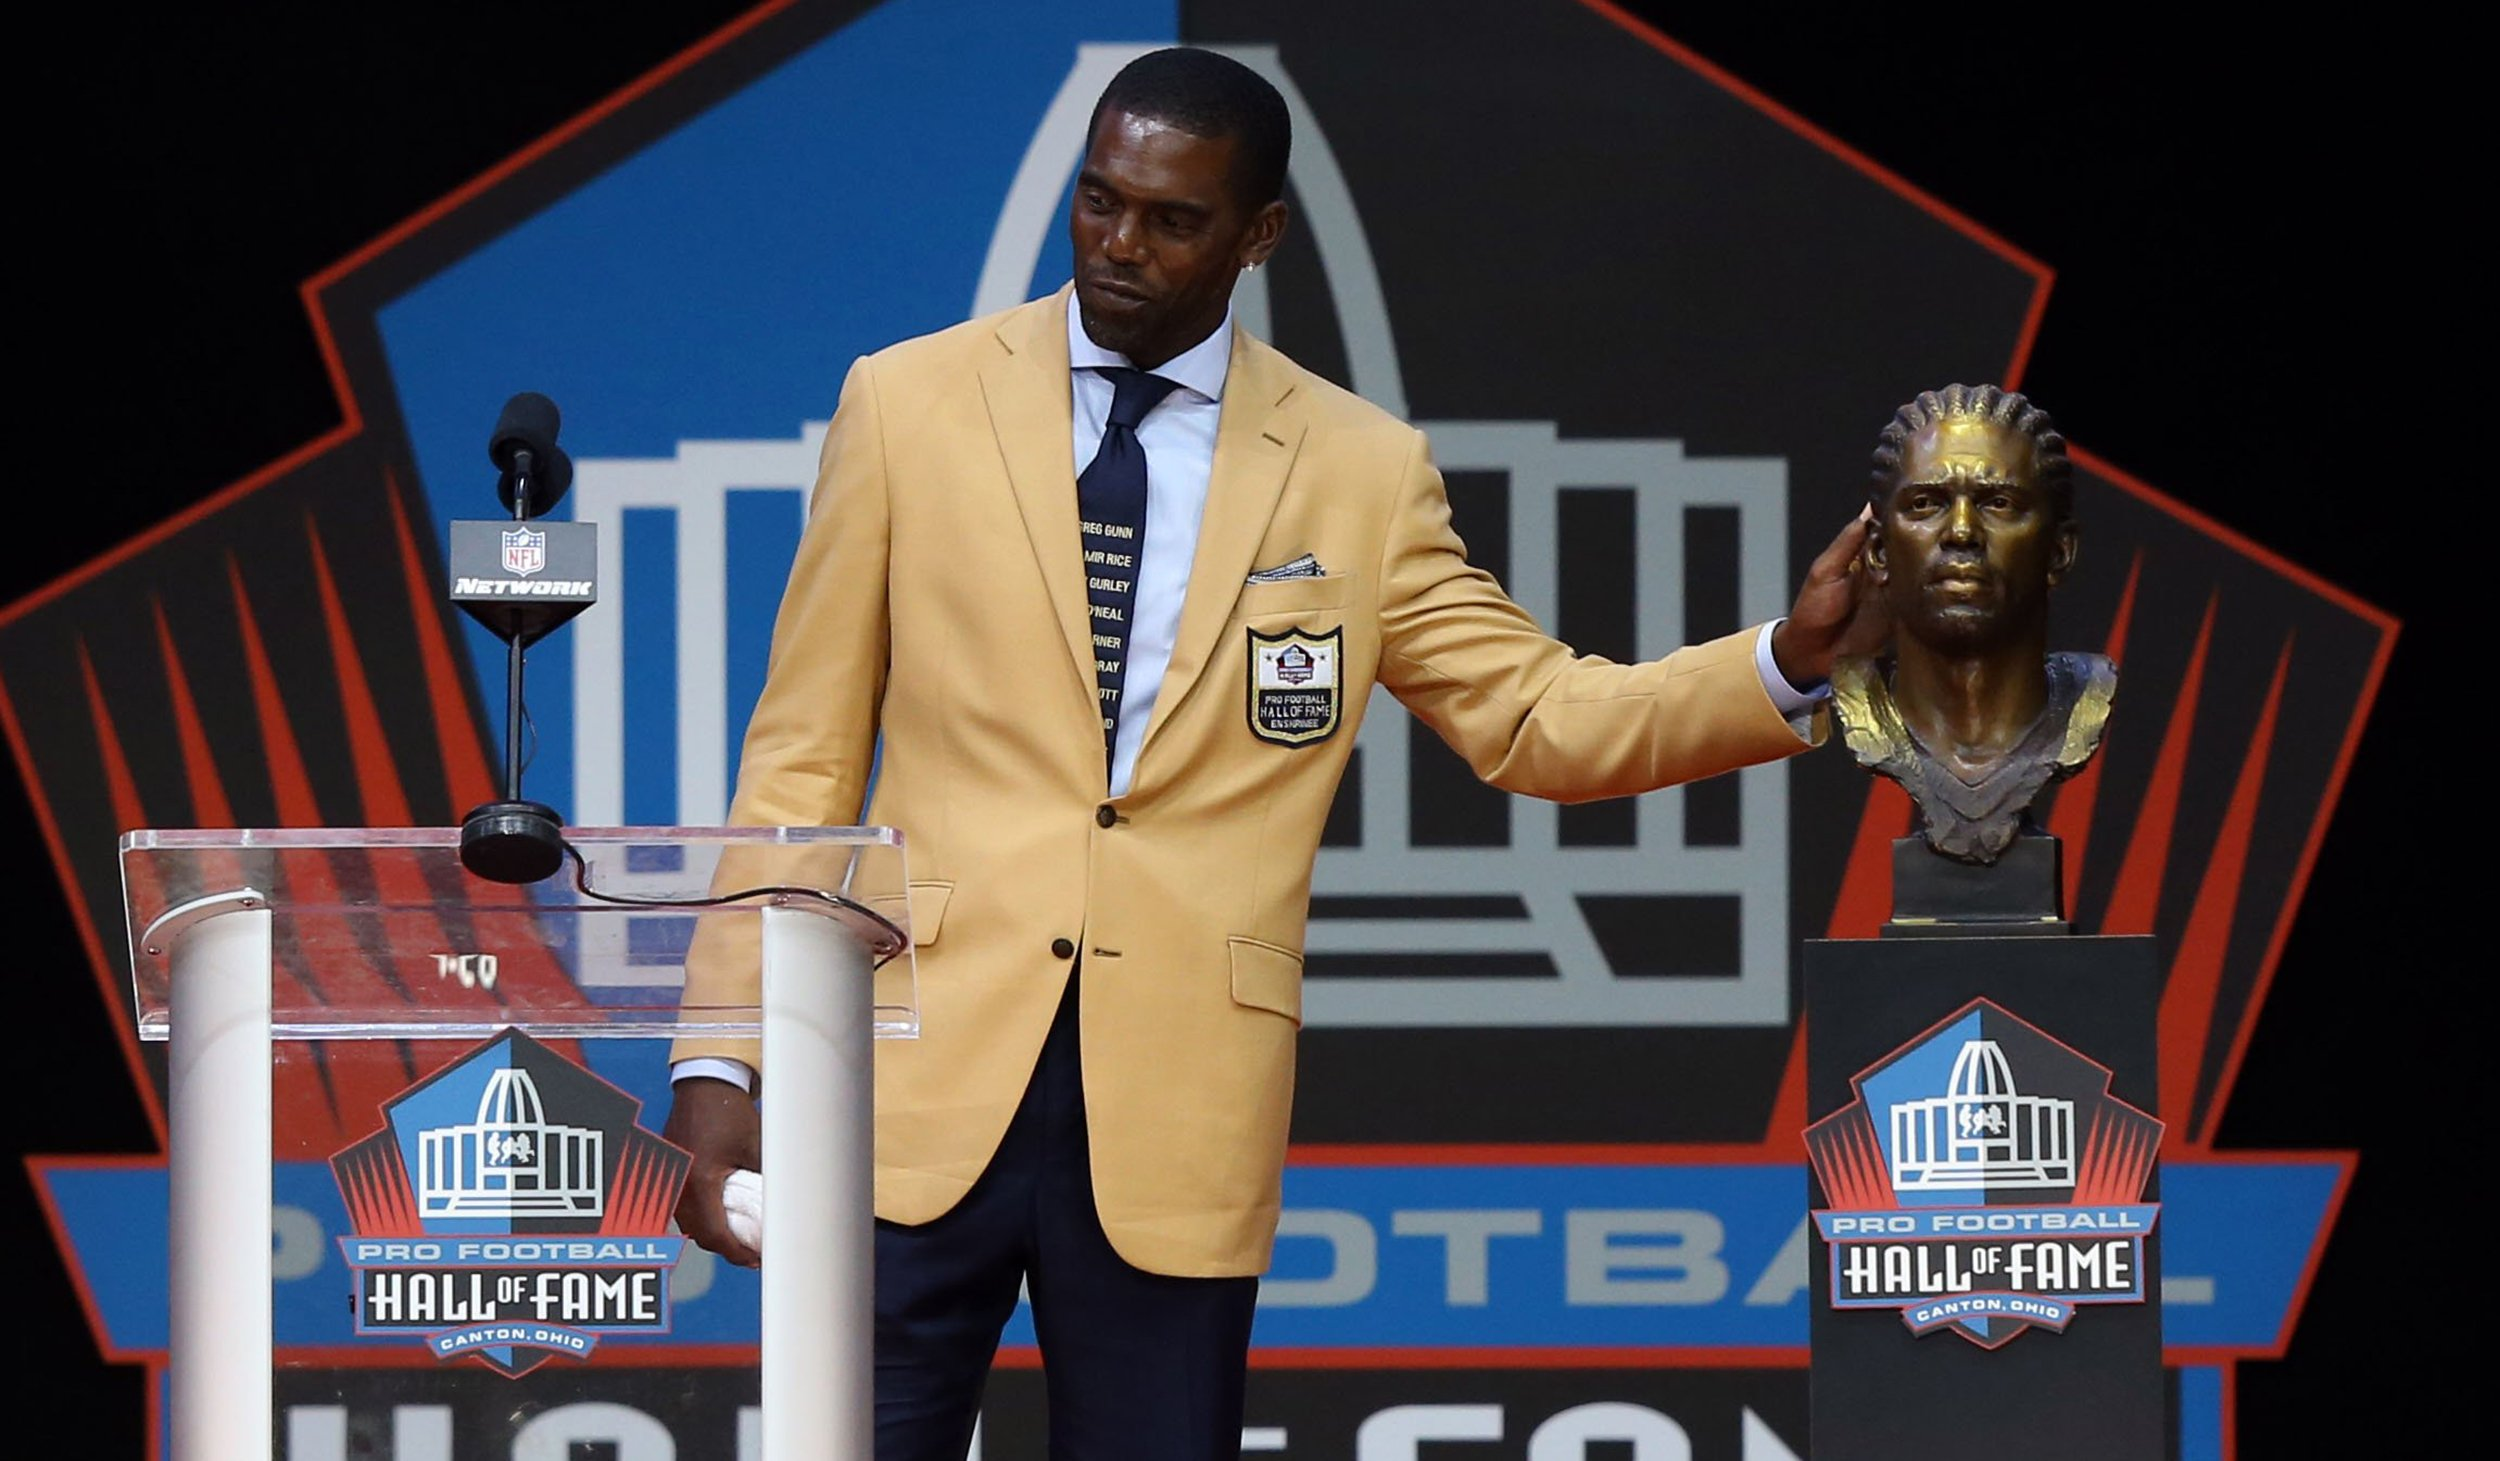 Randy Moss Uses His Tie to Honor Police Brutality Victims During Hall of Fame Induction